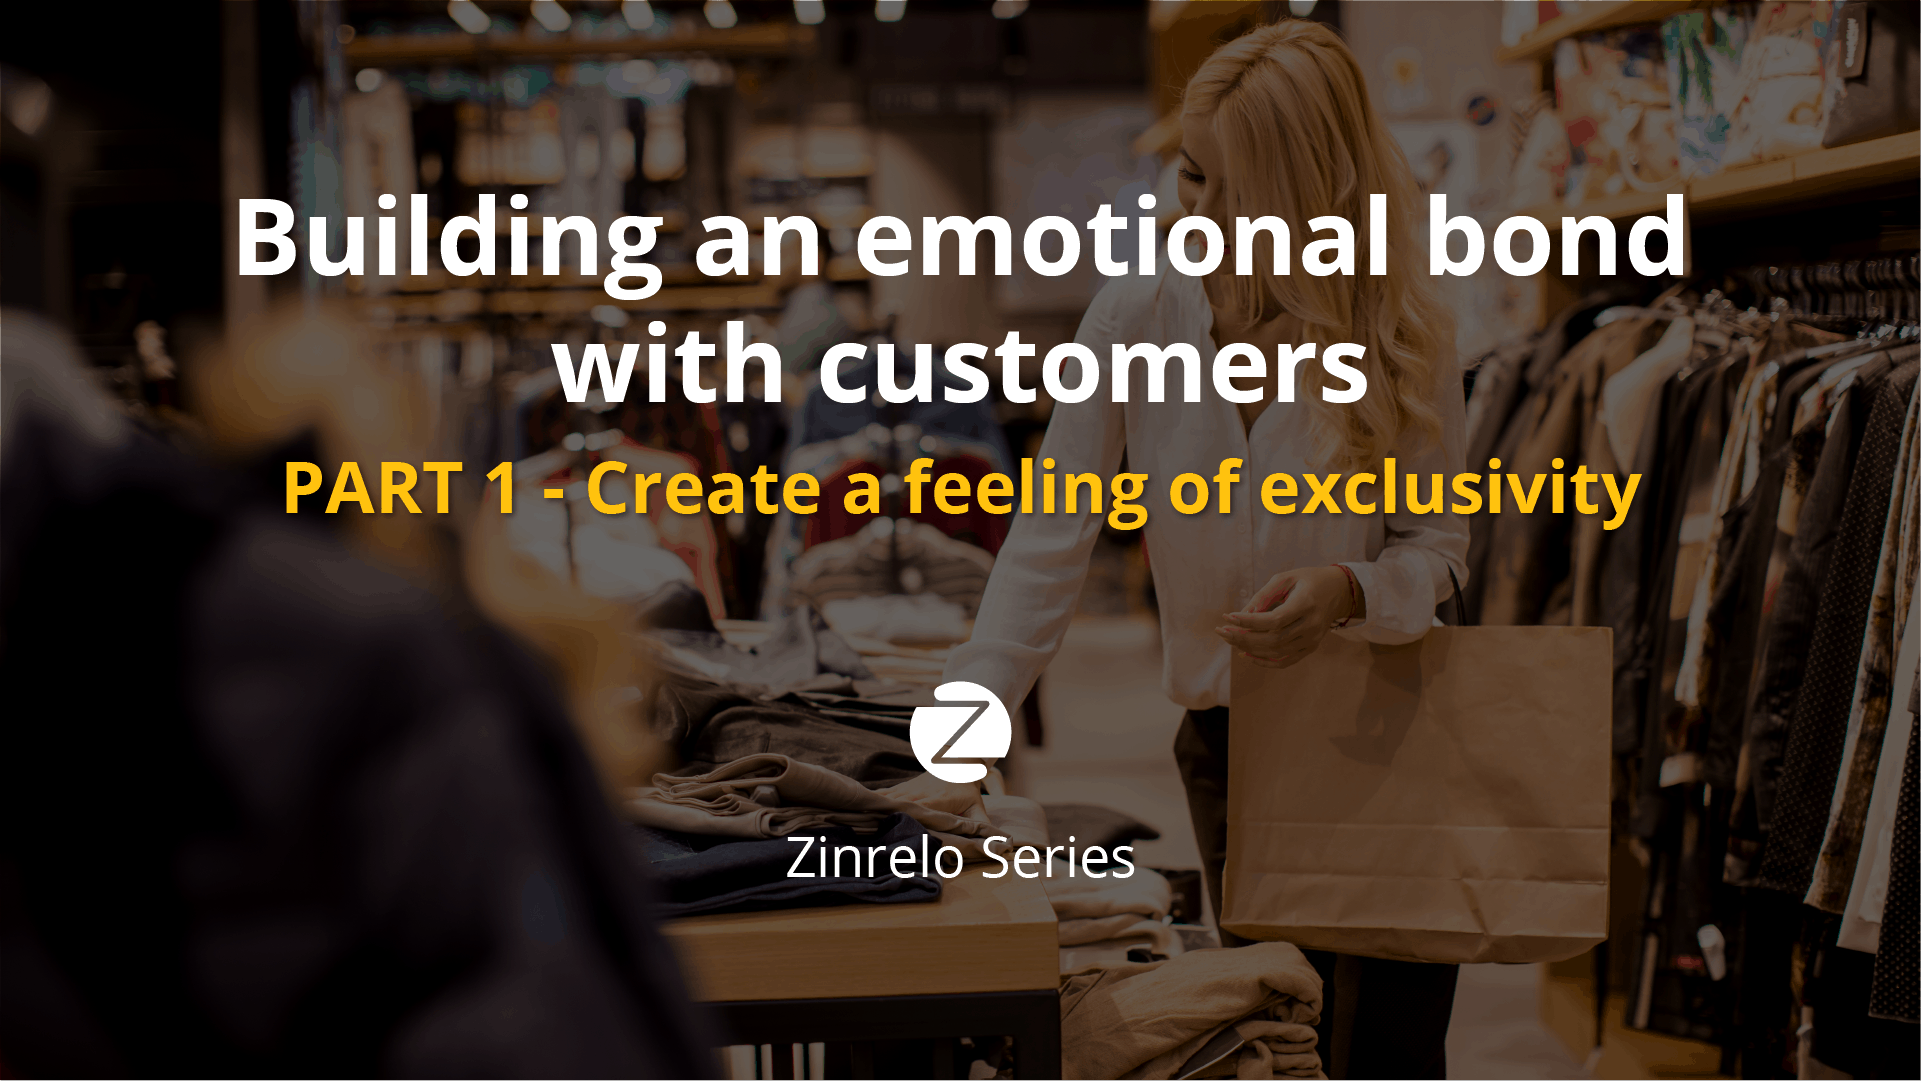 Part 1 – Create a feeling of exclusivity